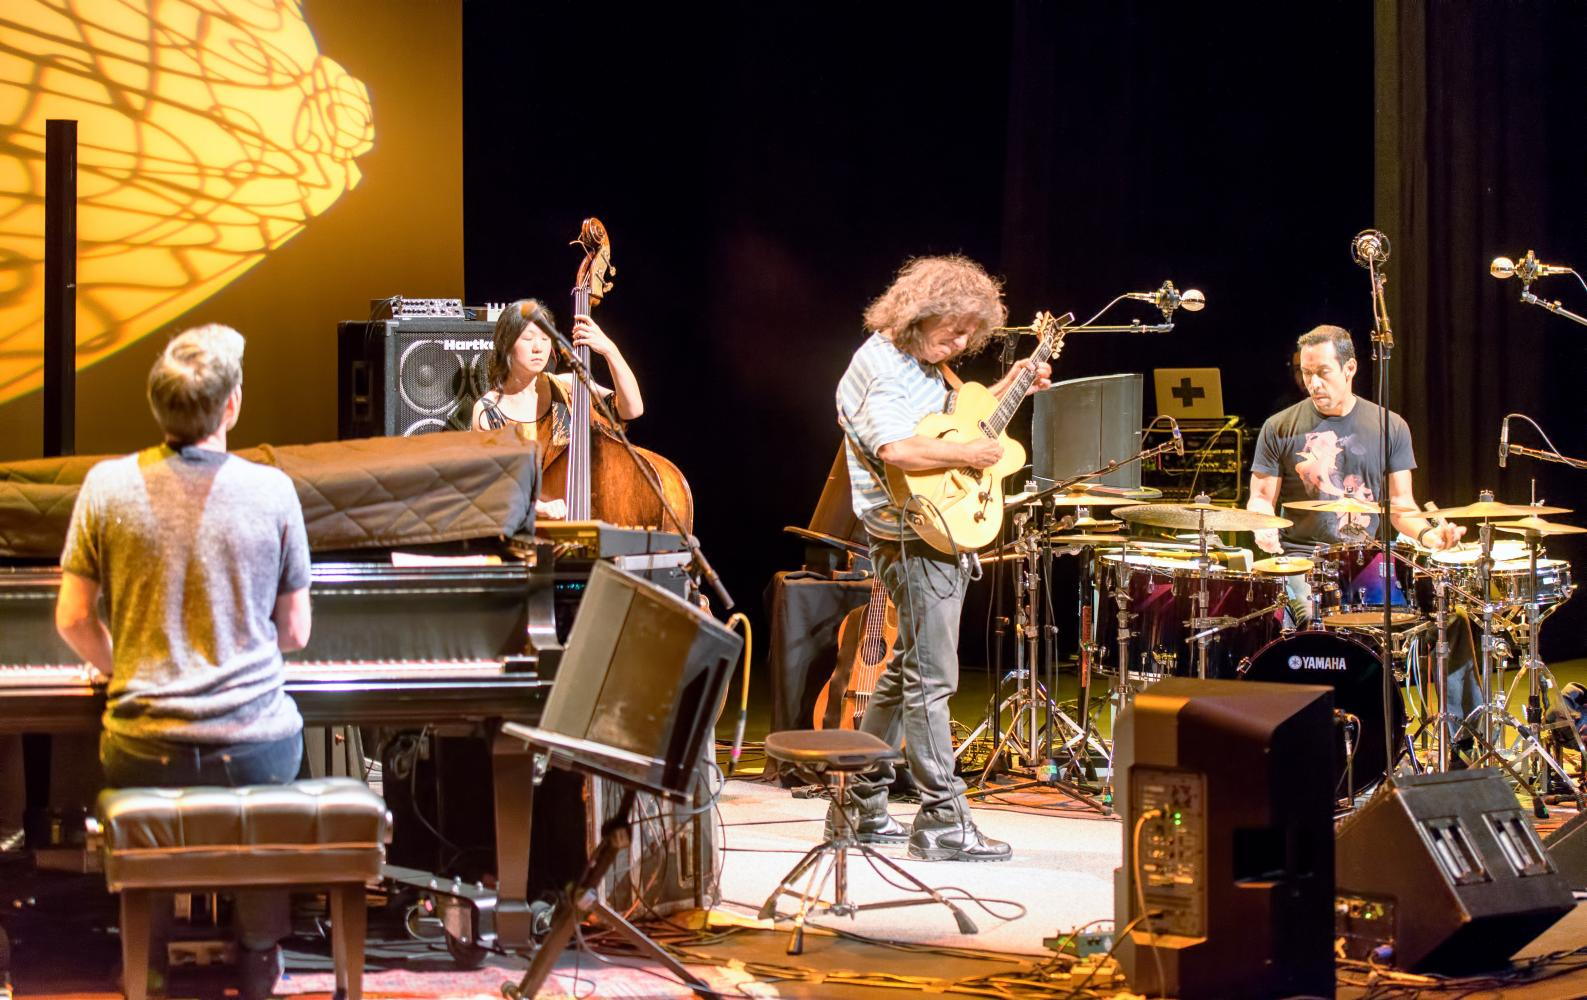 Gwilym Simcock, Pat Metheny, Linda Oh and Antonio Sanchez at the Scottsdale Center for the Performing Arts, Scottsdale, AZ